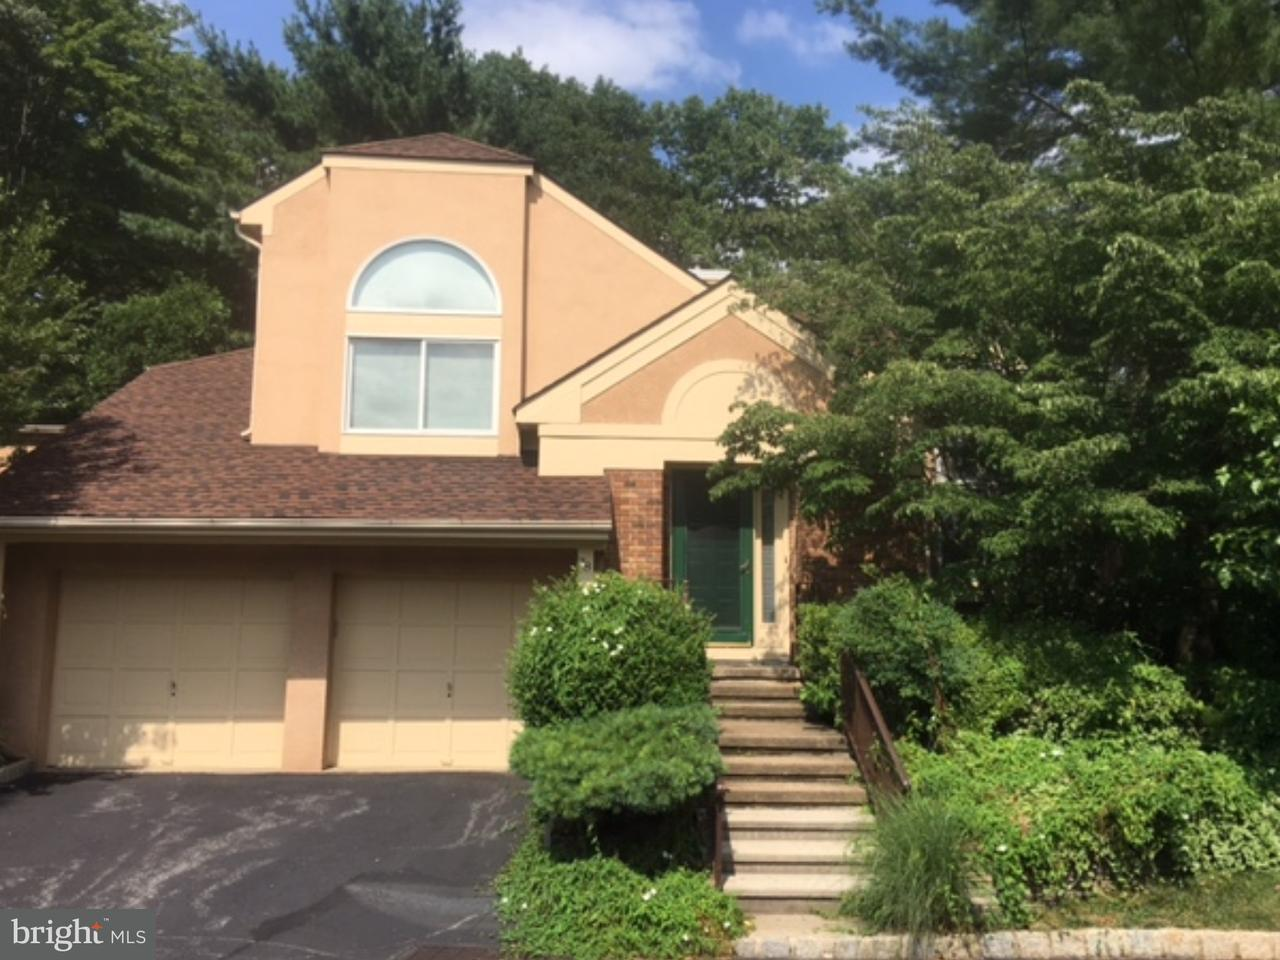 Maison unifamiliale pour l Vente à 78 KINGSLAND Circle Monmouth Junction, New Jersey 08852 États-UnisDans/Autour: South Brunswick Township